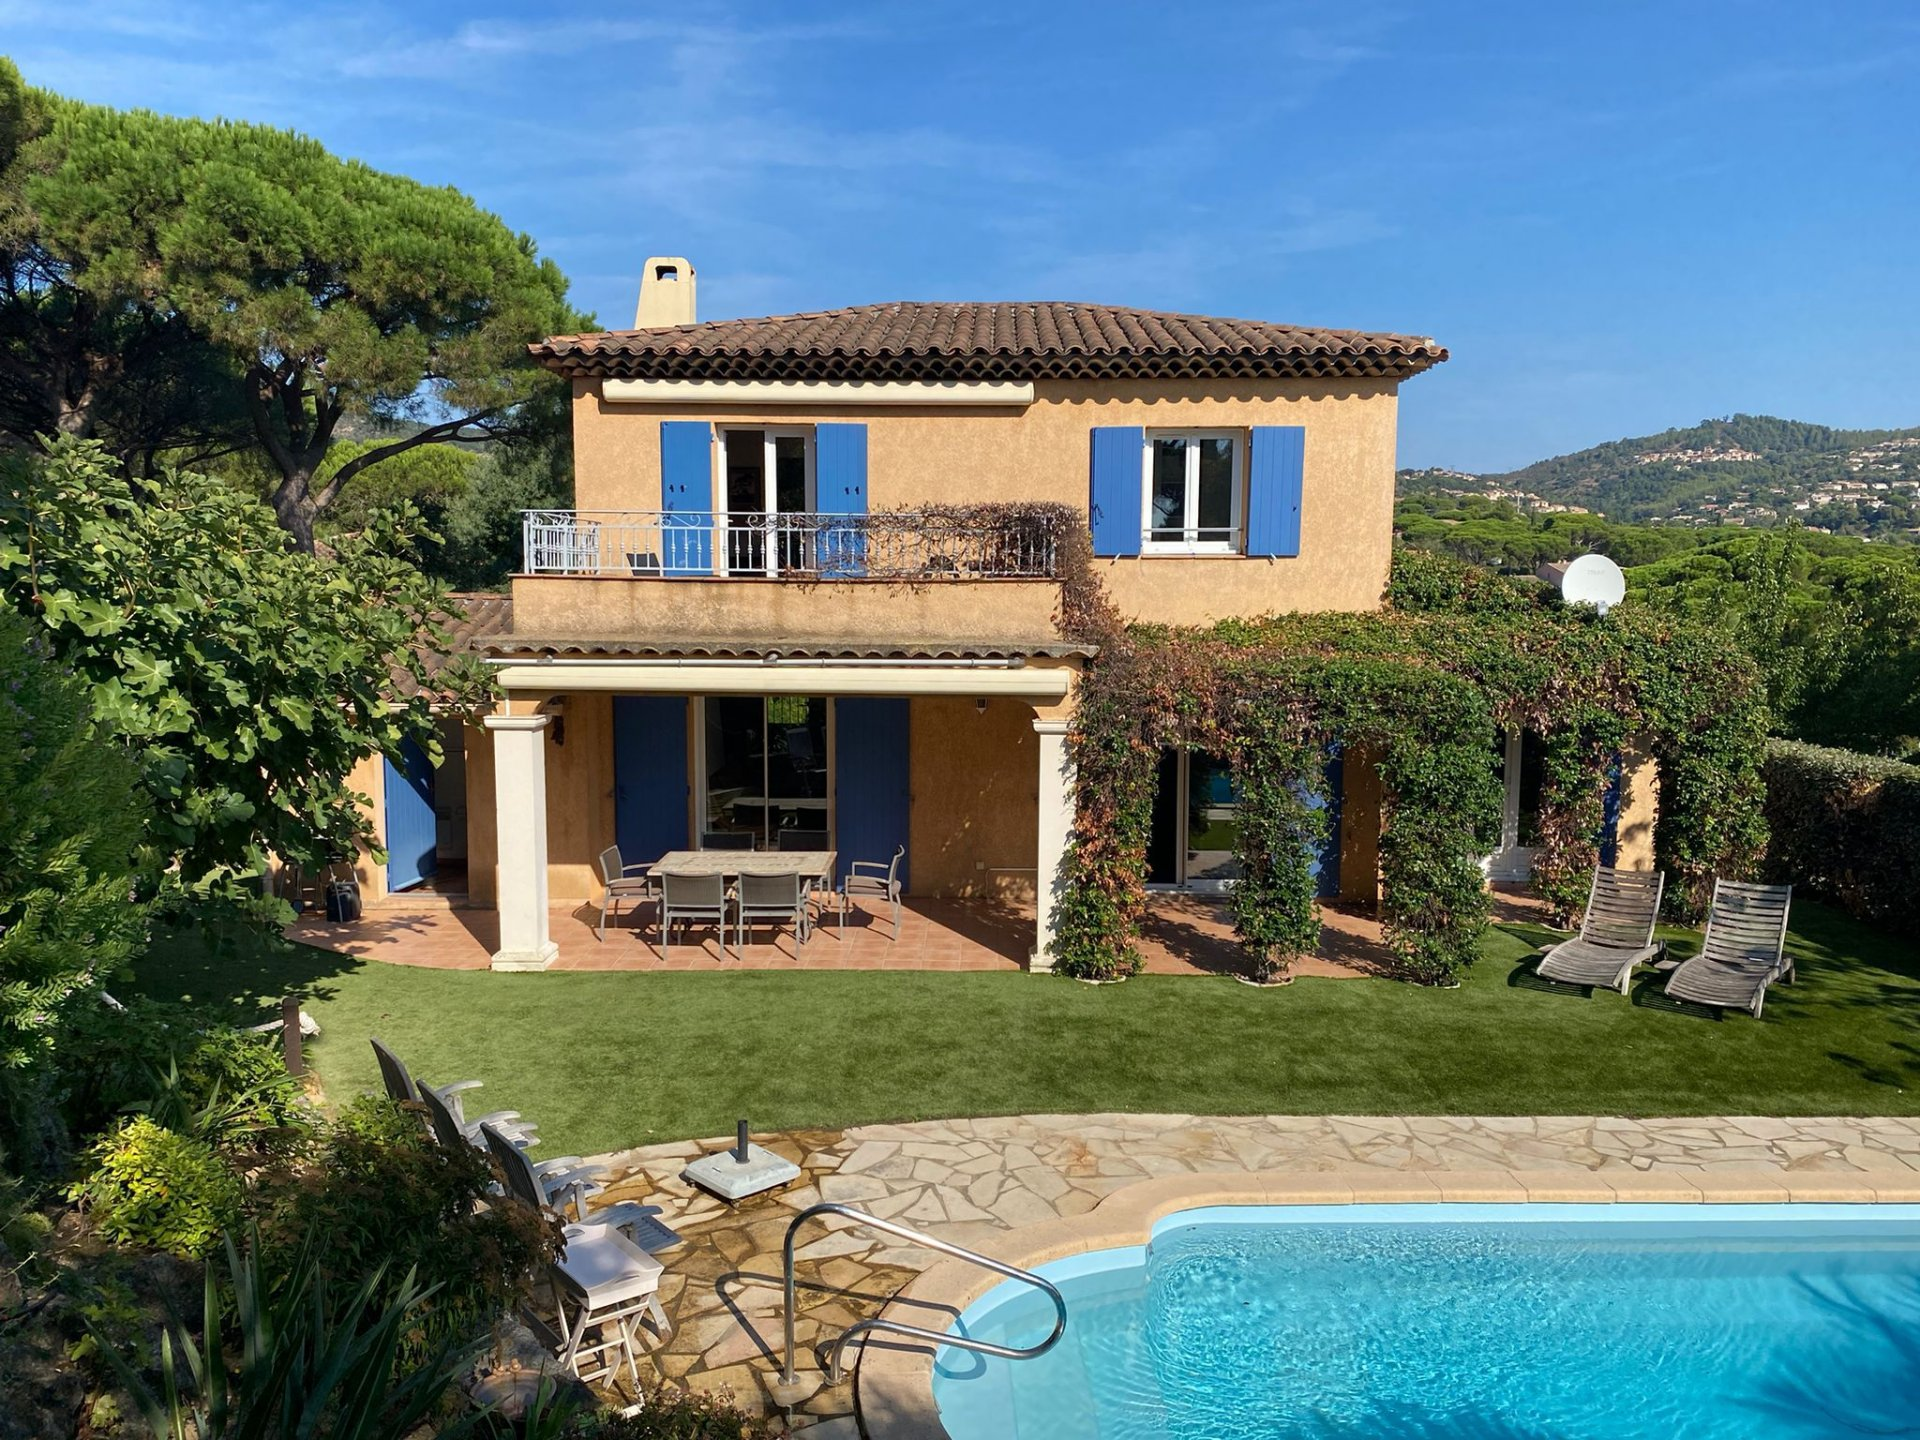 Sainte Maxime - Detached villa within walking distance of the sea